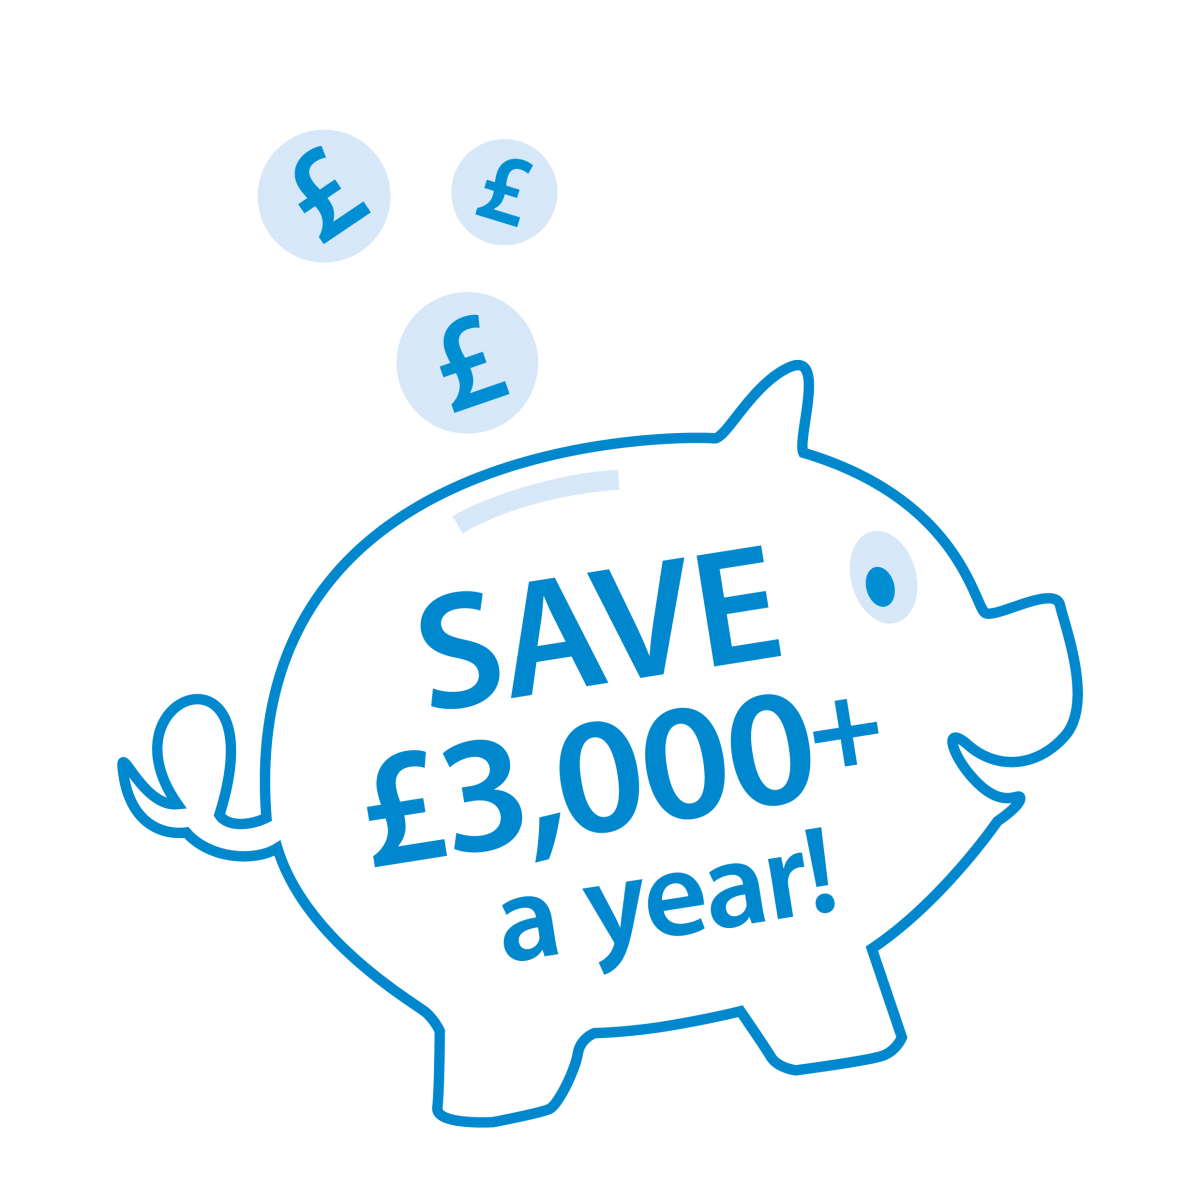 You could save £3000+ a year when you quit smoking